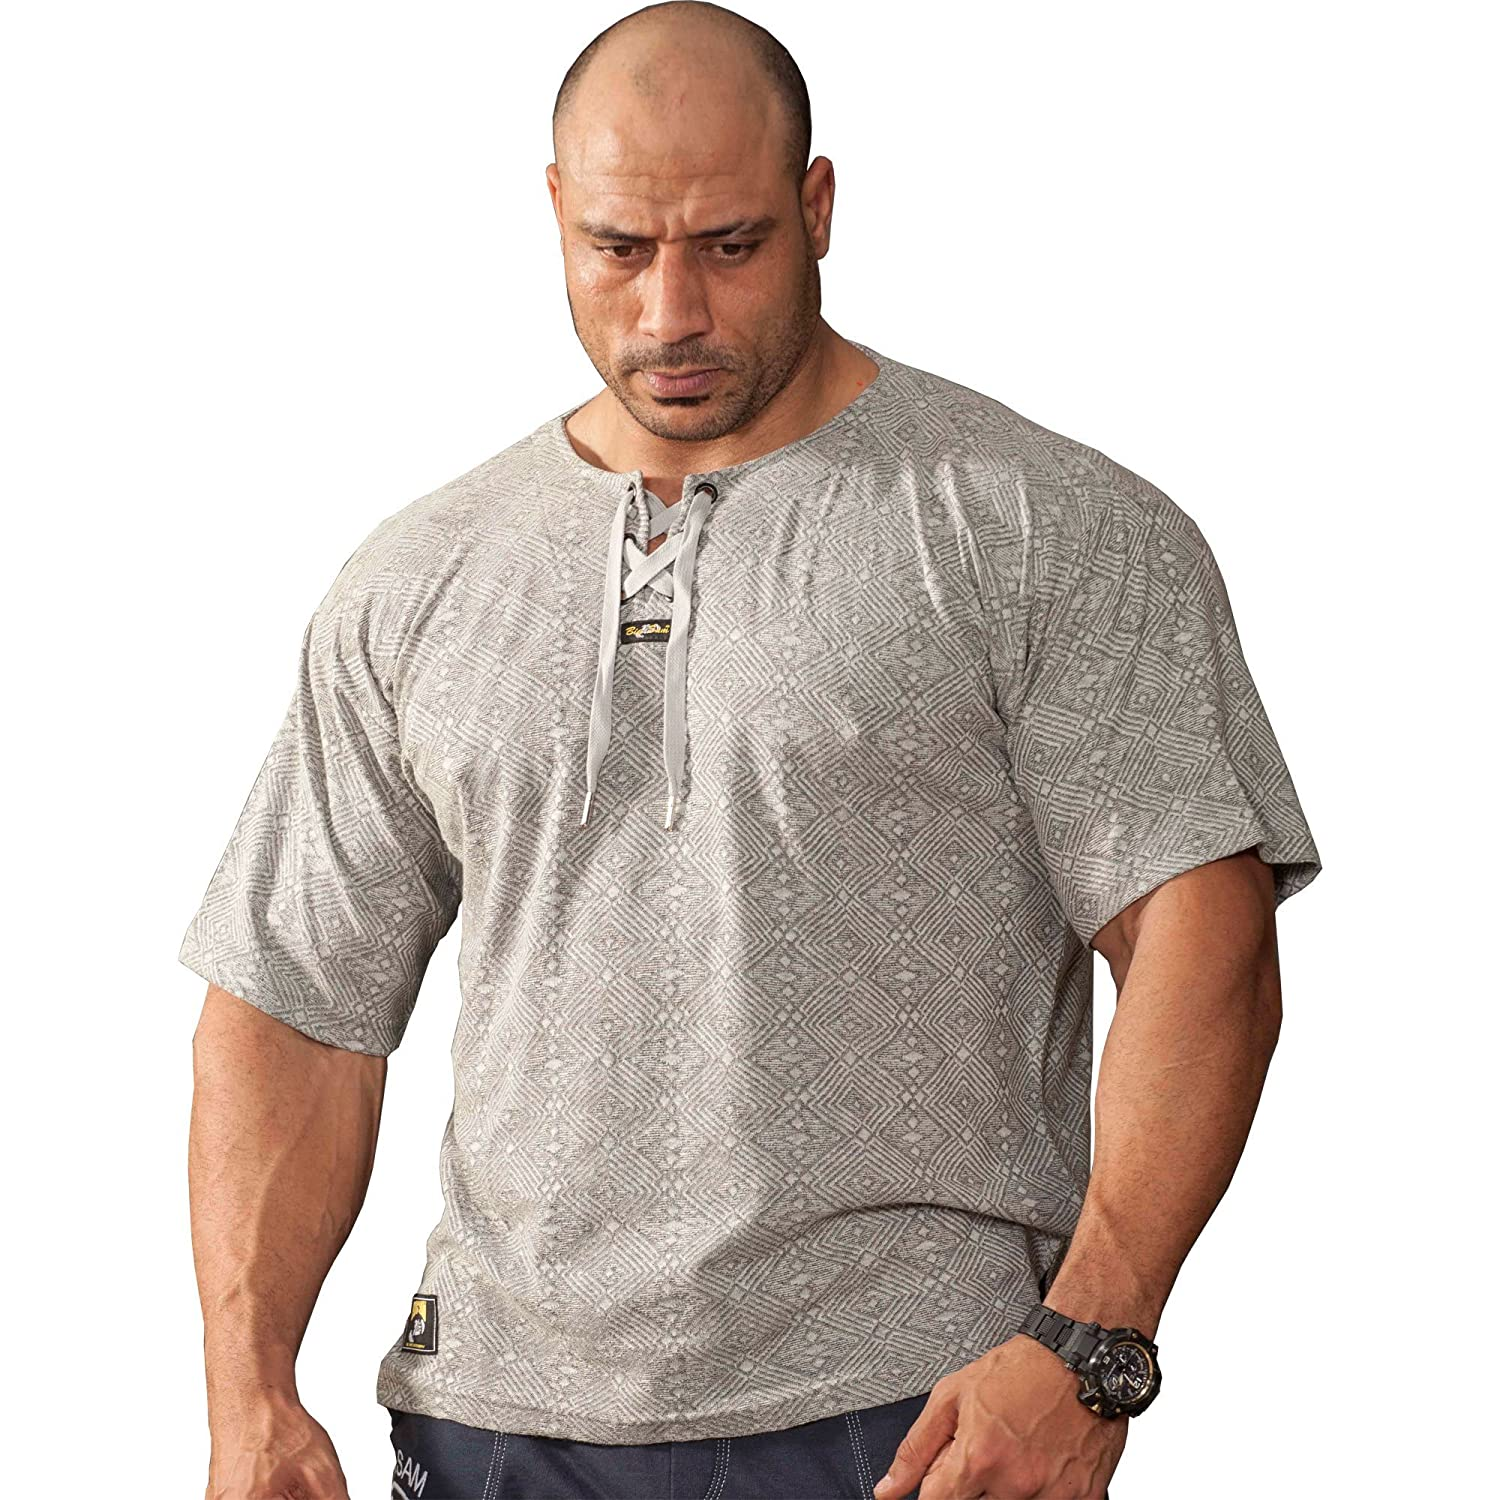 BIG SM EXTREME SPORTSWEAR Herren T-Shirt Stretch Shirt Bodybuilding Gym 2816